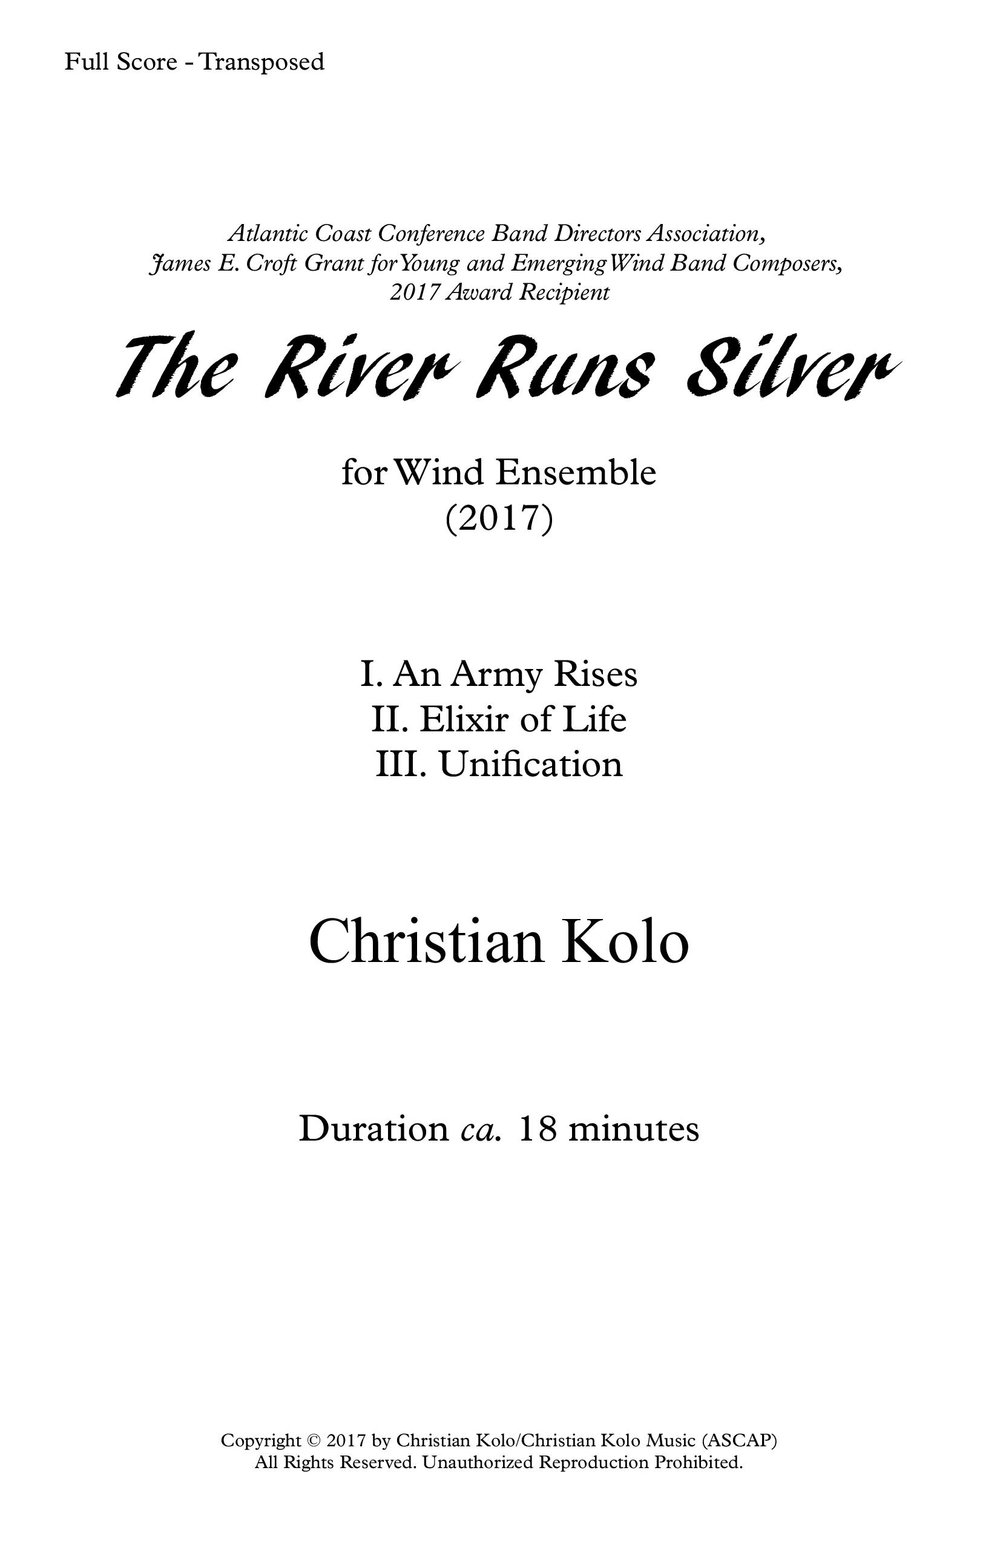 The River Runs Silver (2017) 18'